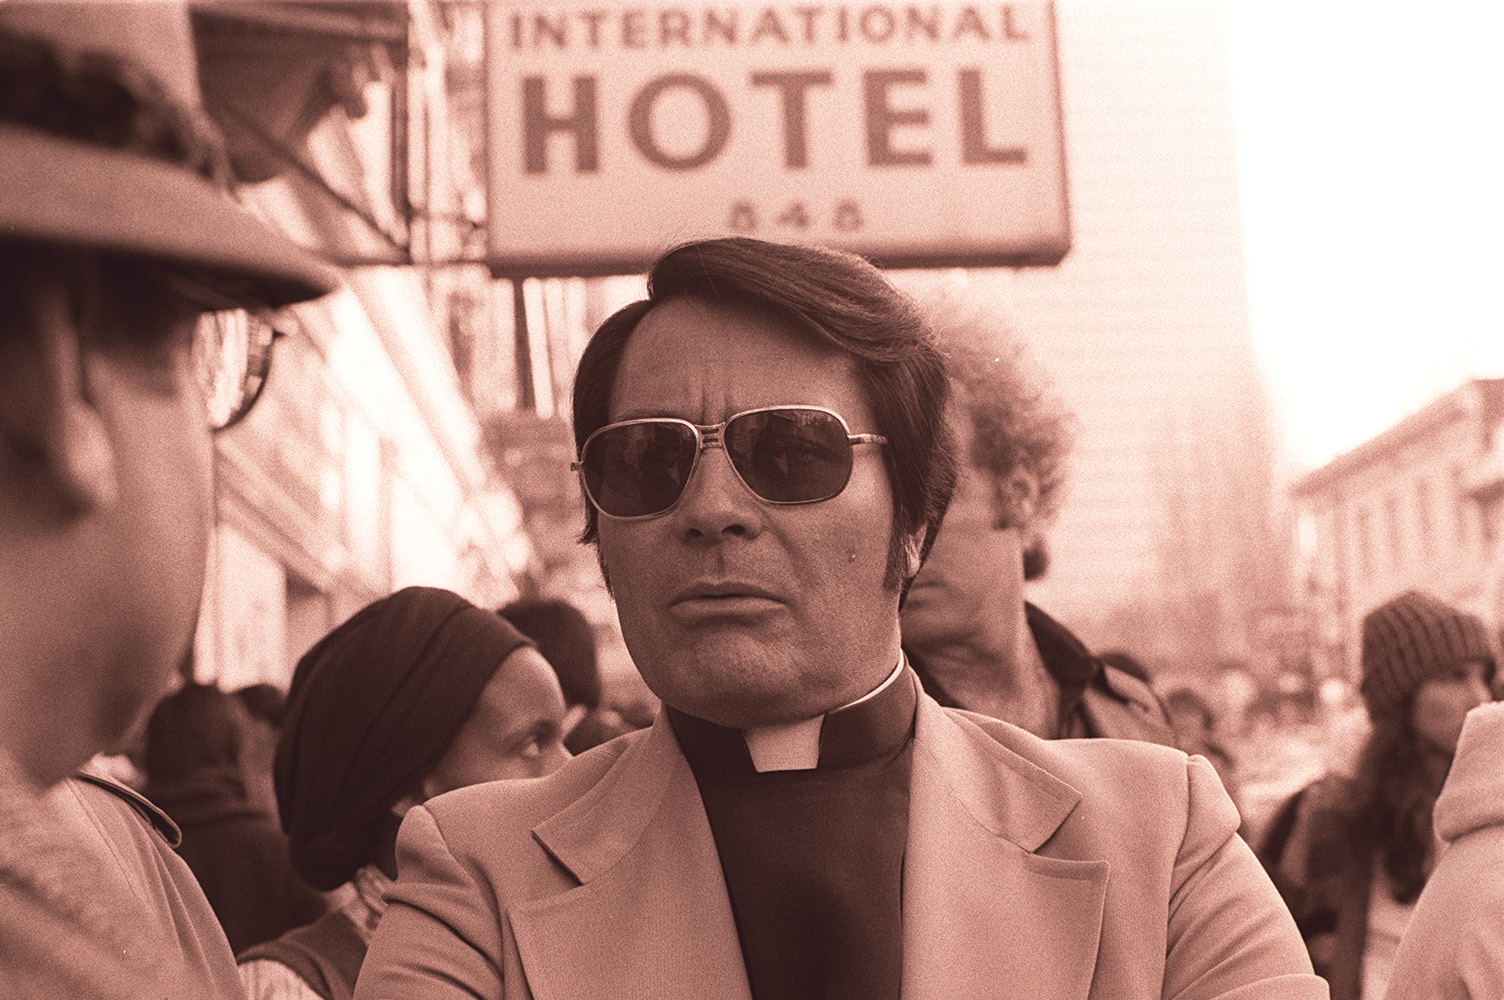 Jim Jones, leader of the Peoples Temple, at a protest in San Francisco in 1977